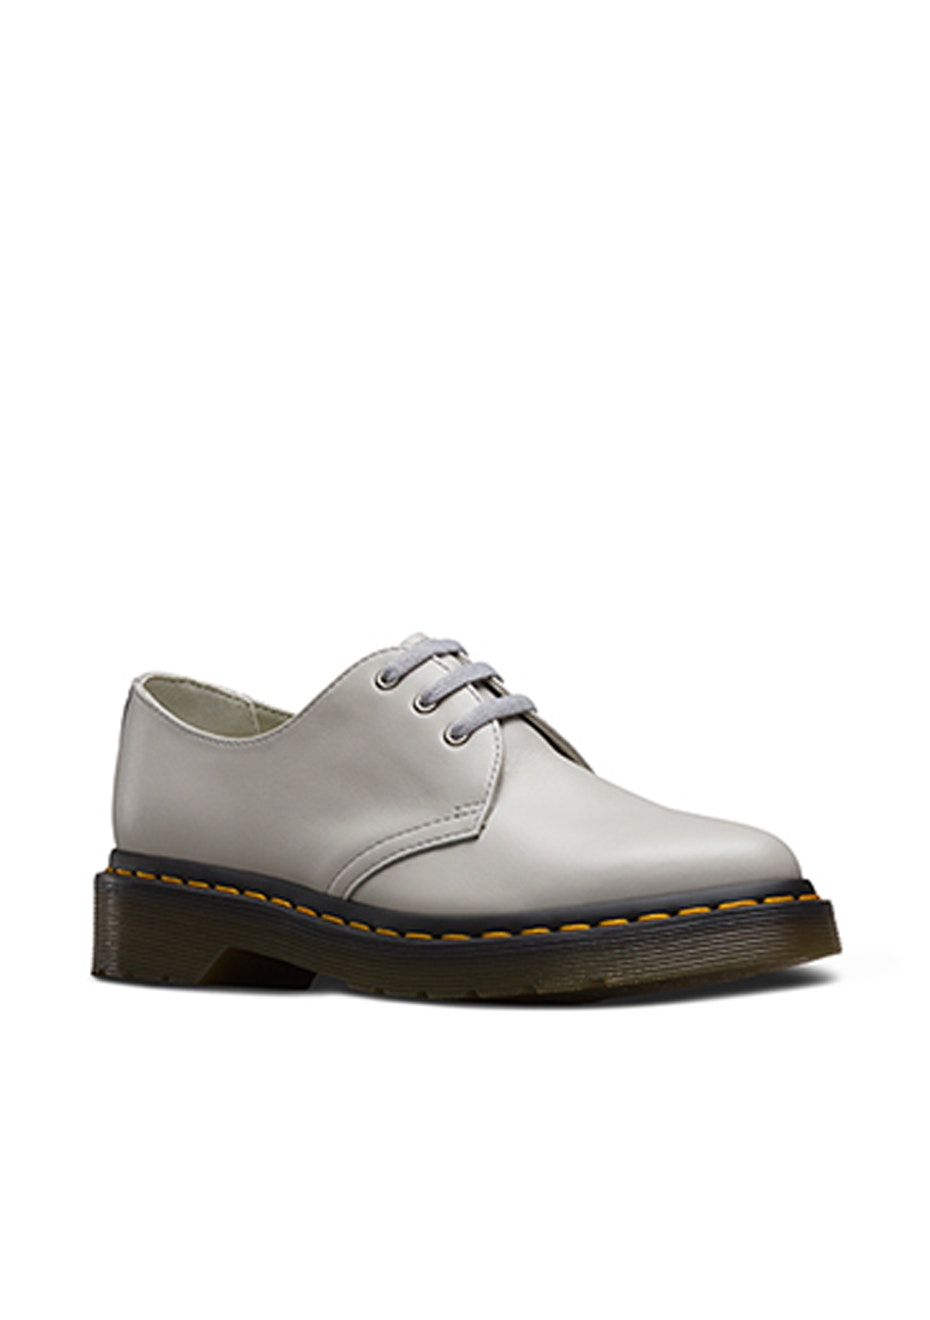 Dr Martens - Dupree 3 Eye Shoe - Grey